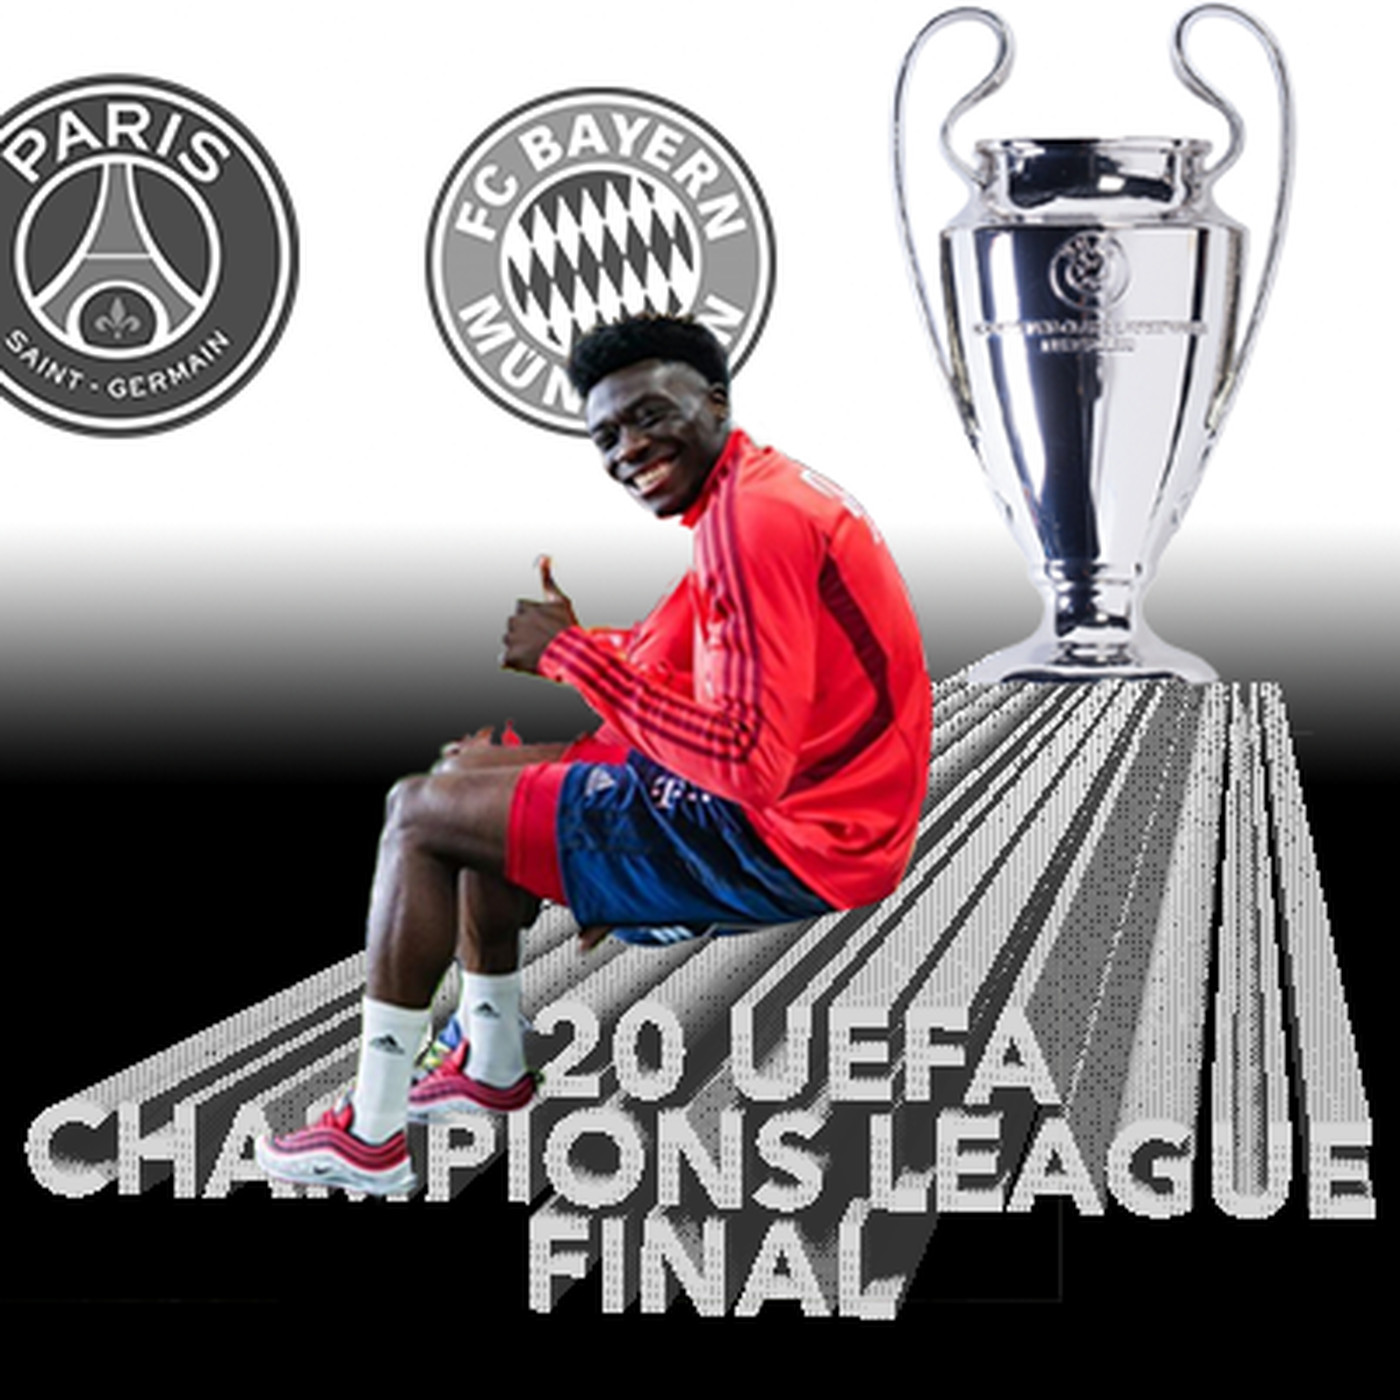 alphonso davies looks to make history against psg in uefa champions league final sunday waking the red uefa champions league final sunday